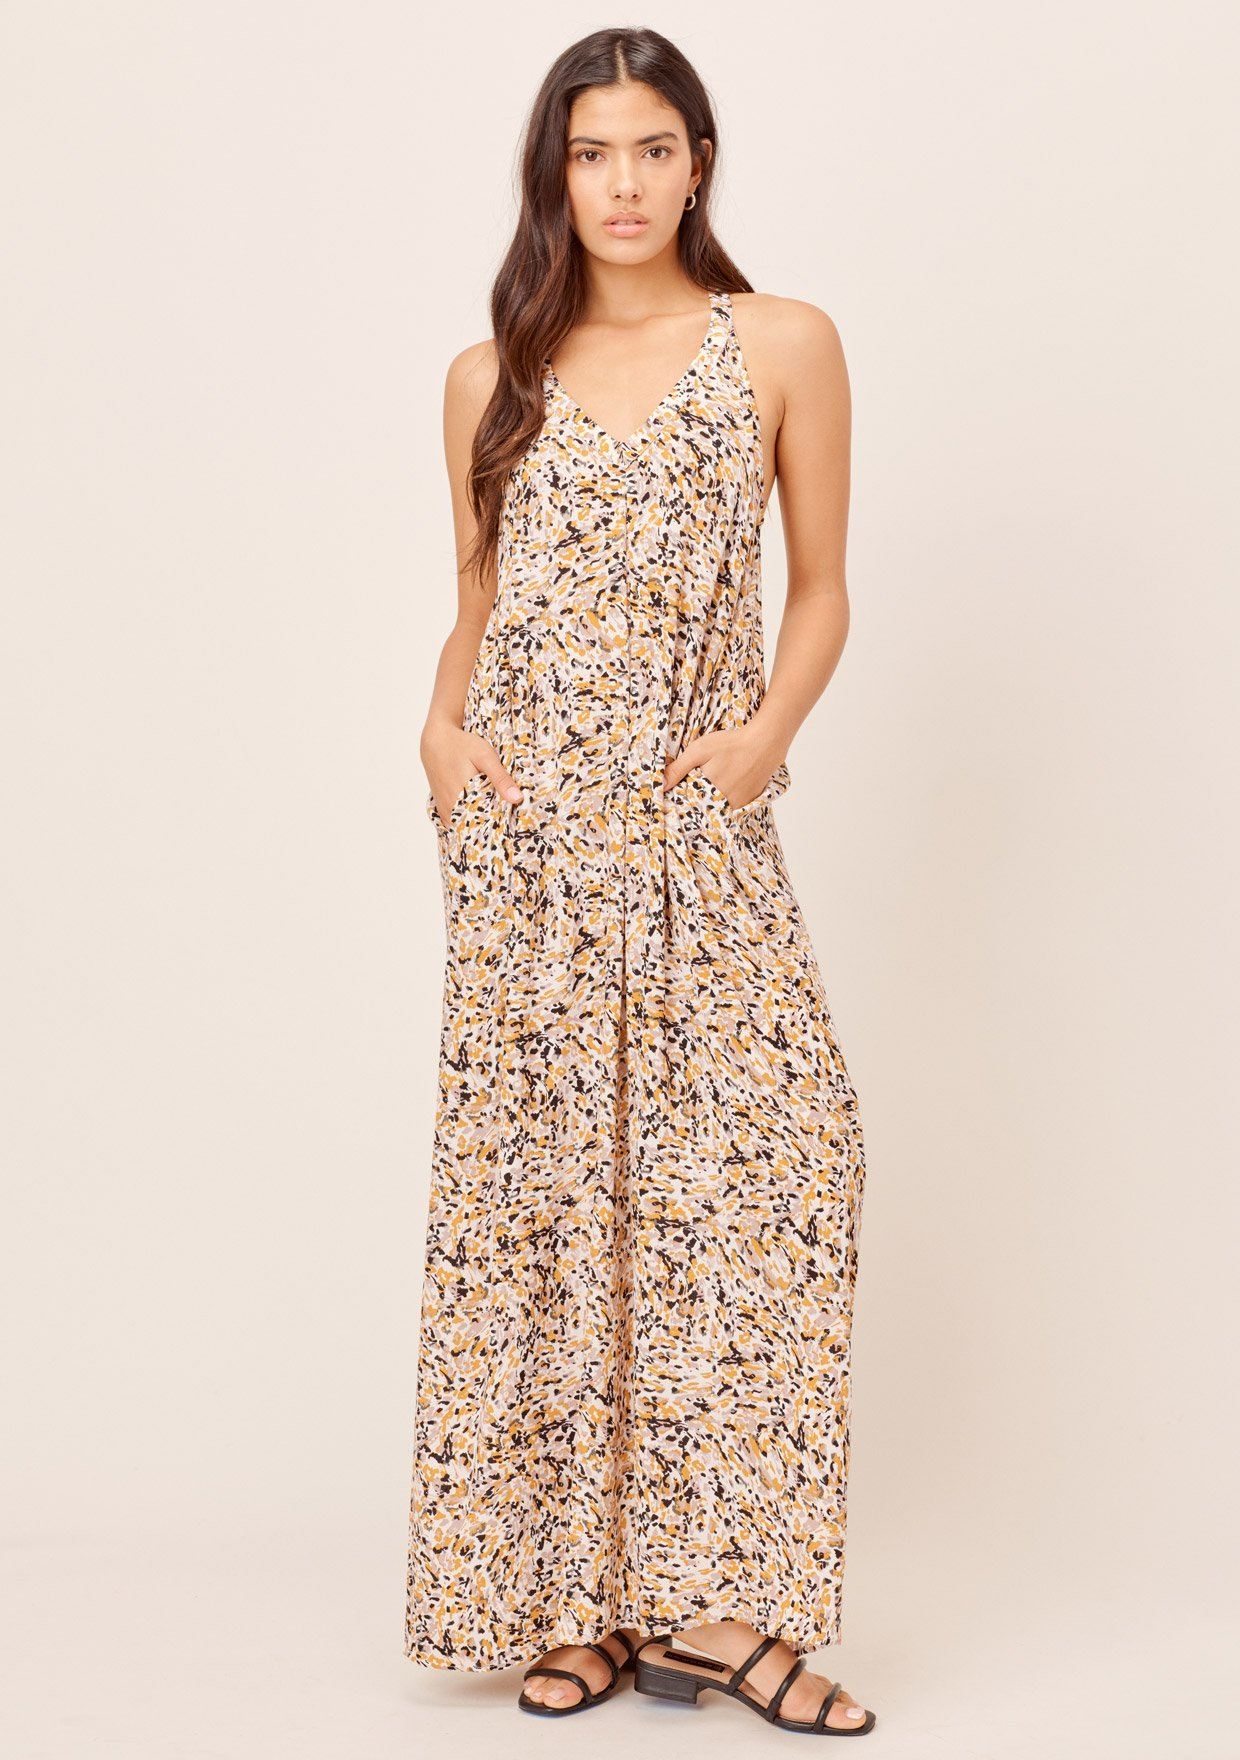 [Color: Bone/Butterscotch] Lovestitch Brushstroke animal printed, pleated racerback maxi dress with side pockets.